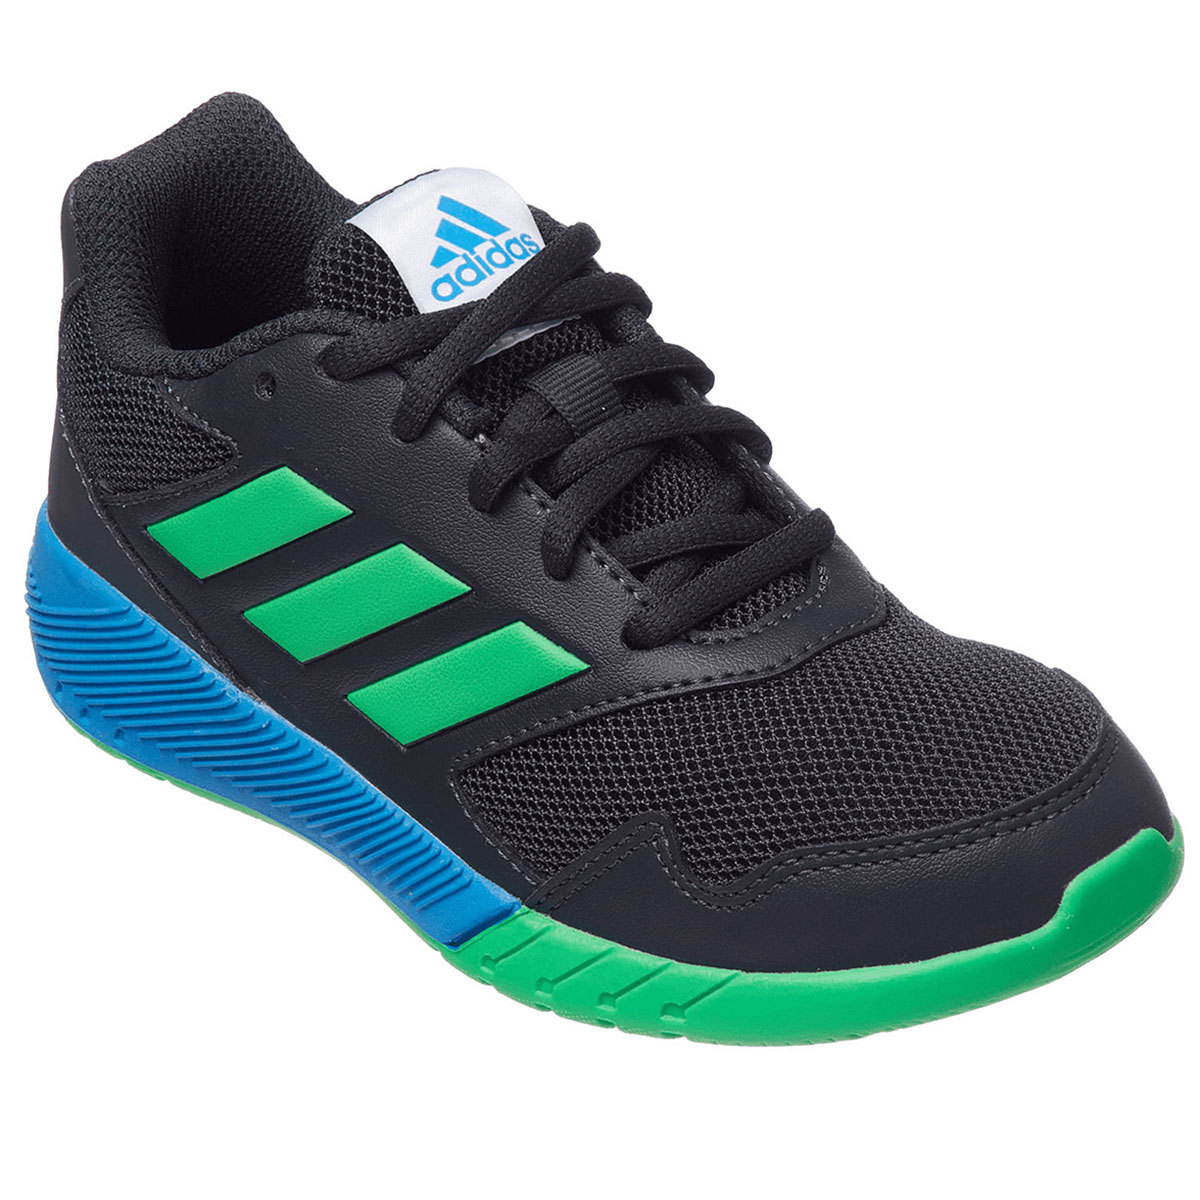 Adidas Boys' Altarun Running Shoes - Black, 4.5